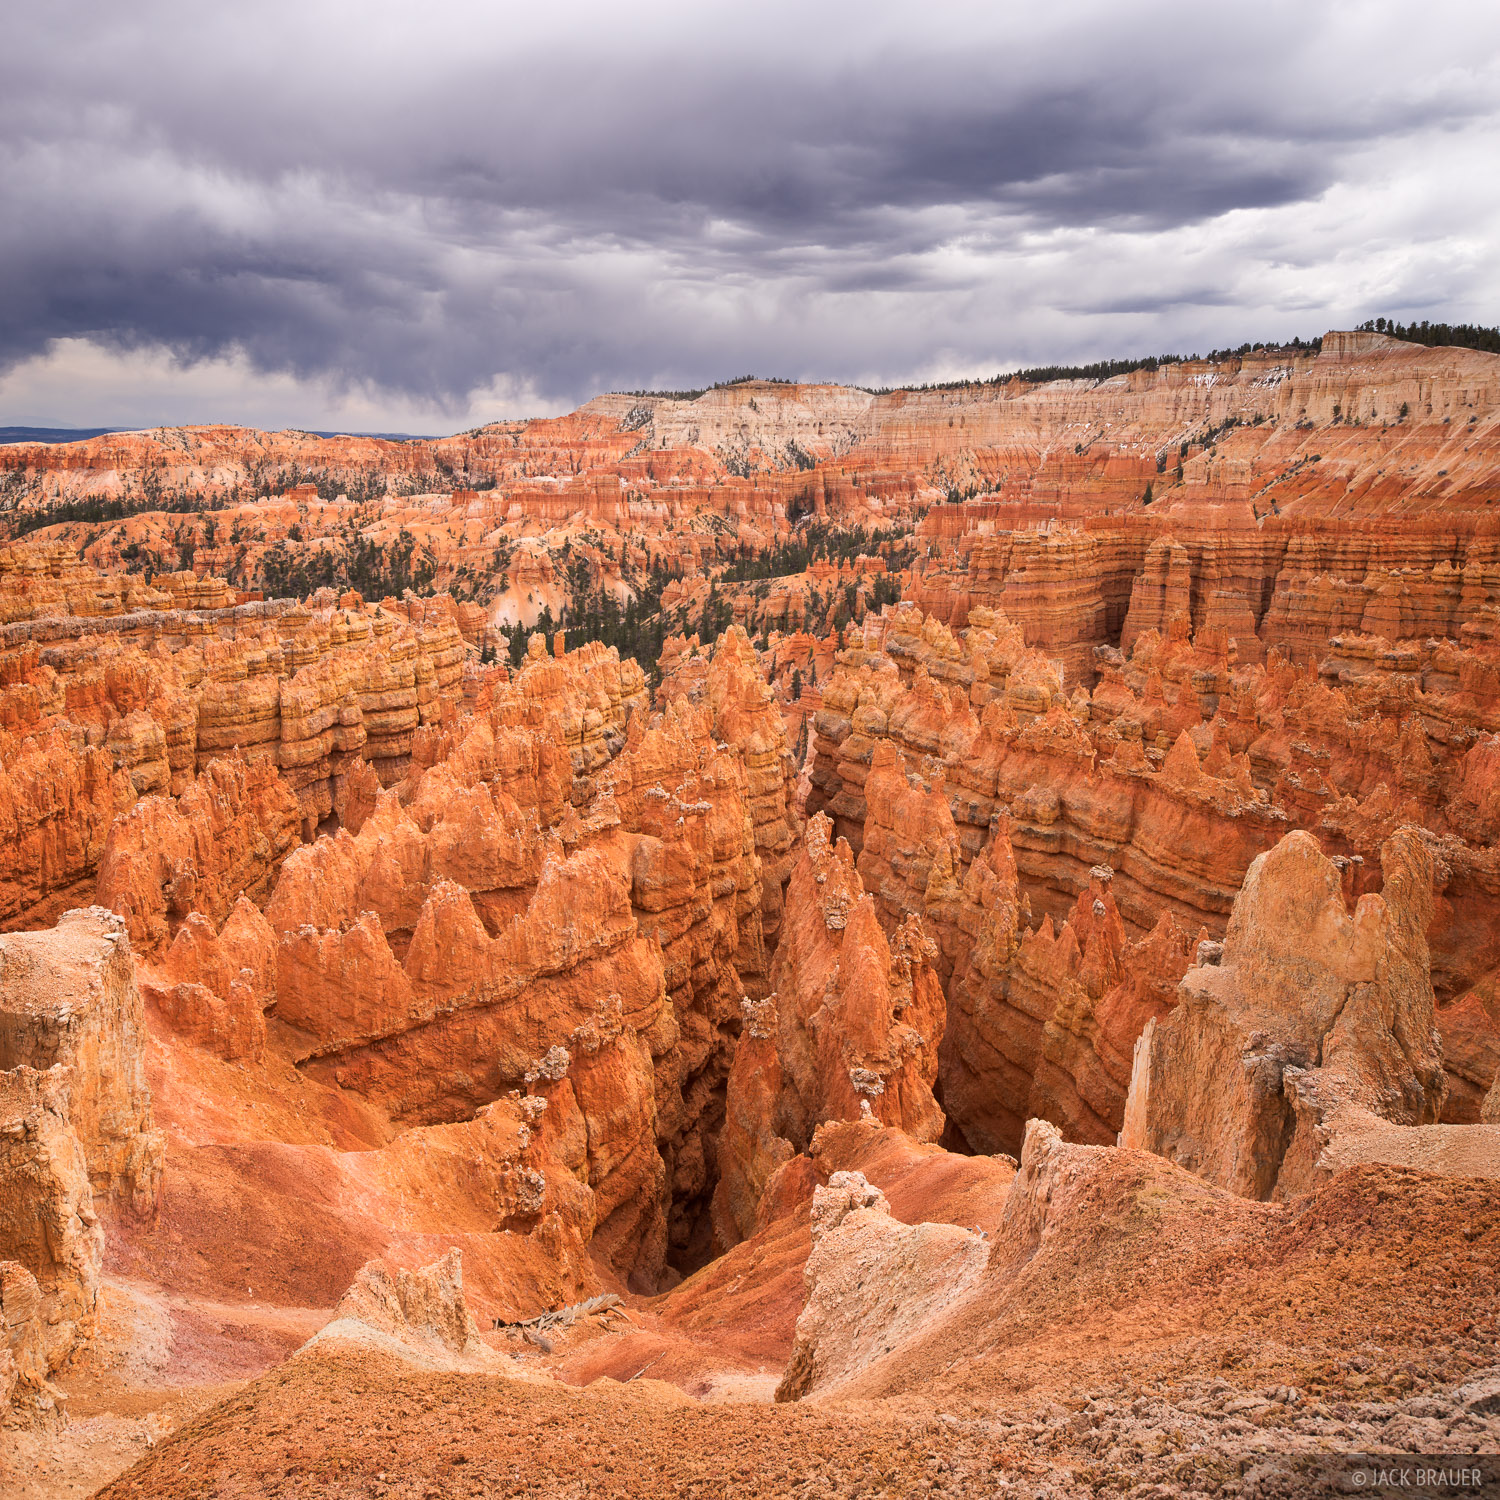 Ominous stormy clouds over Bryce Canyon National Park - April.